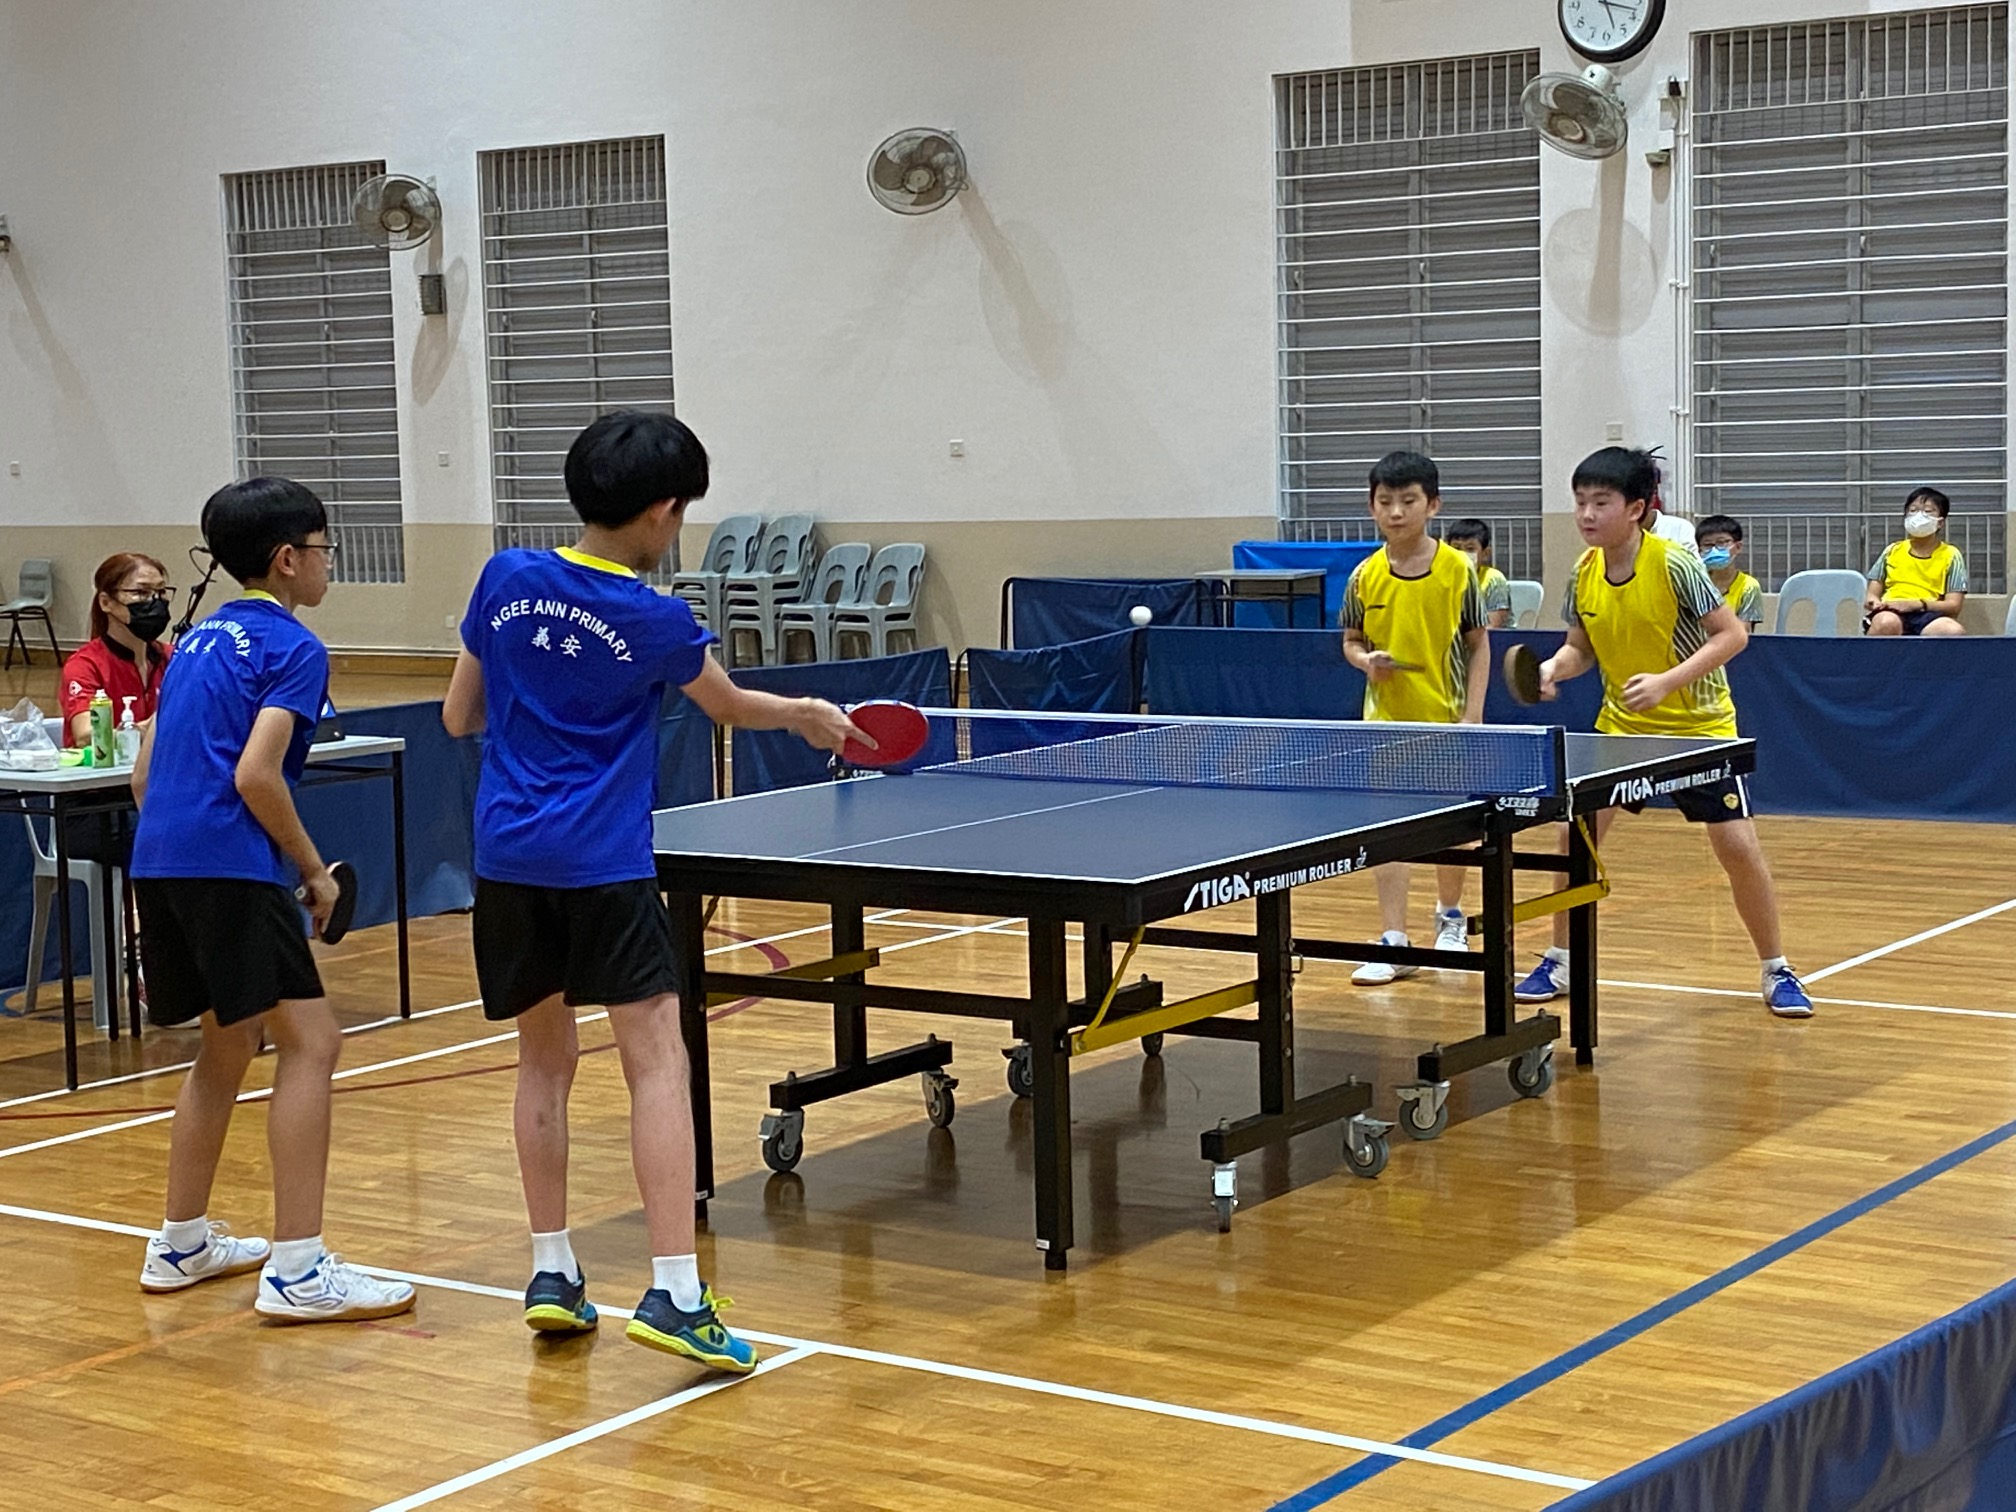 NSG East Zone Snr Div boys table tennis final - second doubles